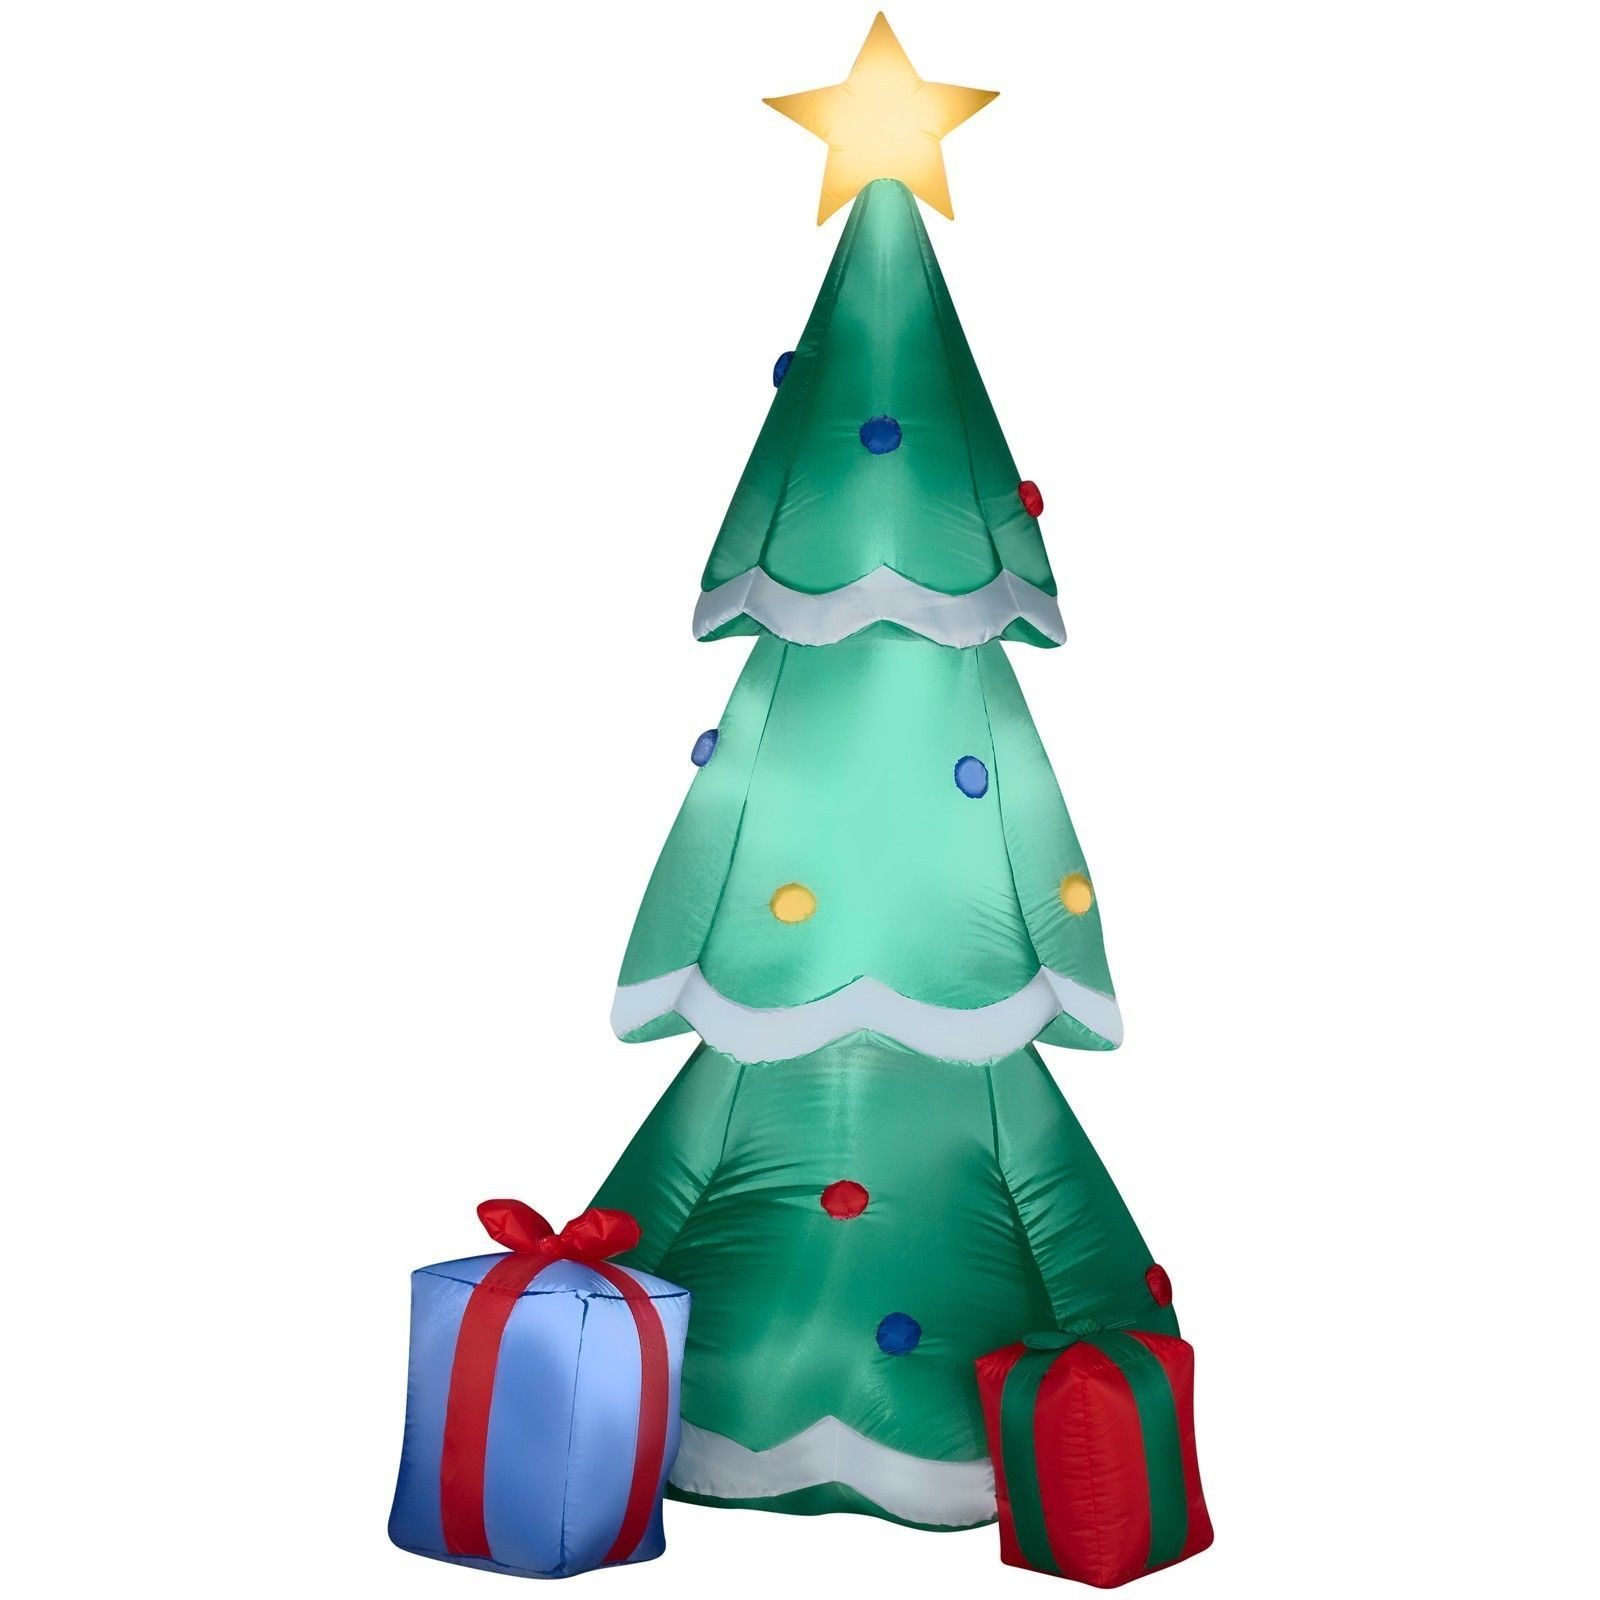 Airblown Christmas Tree With Presents Inflatable Outdoor Yard Decor -